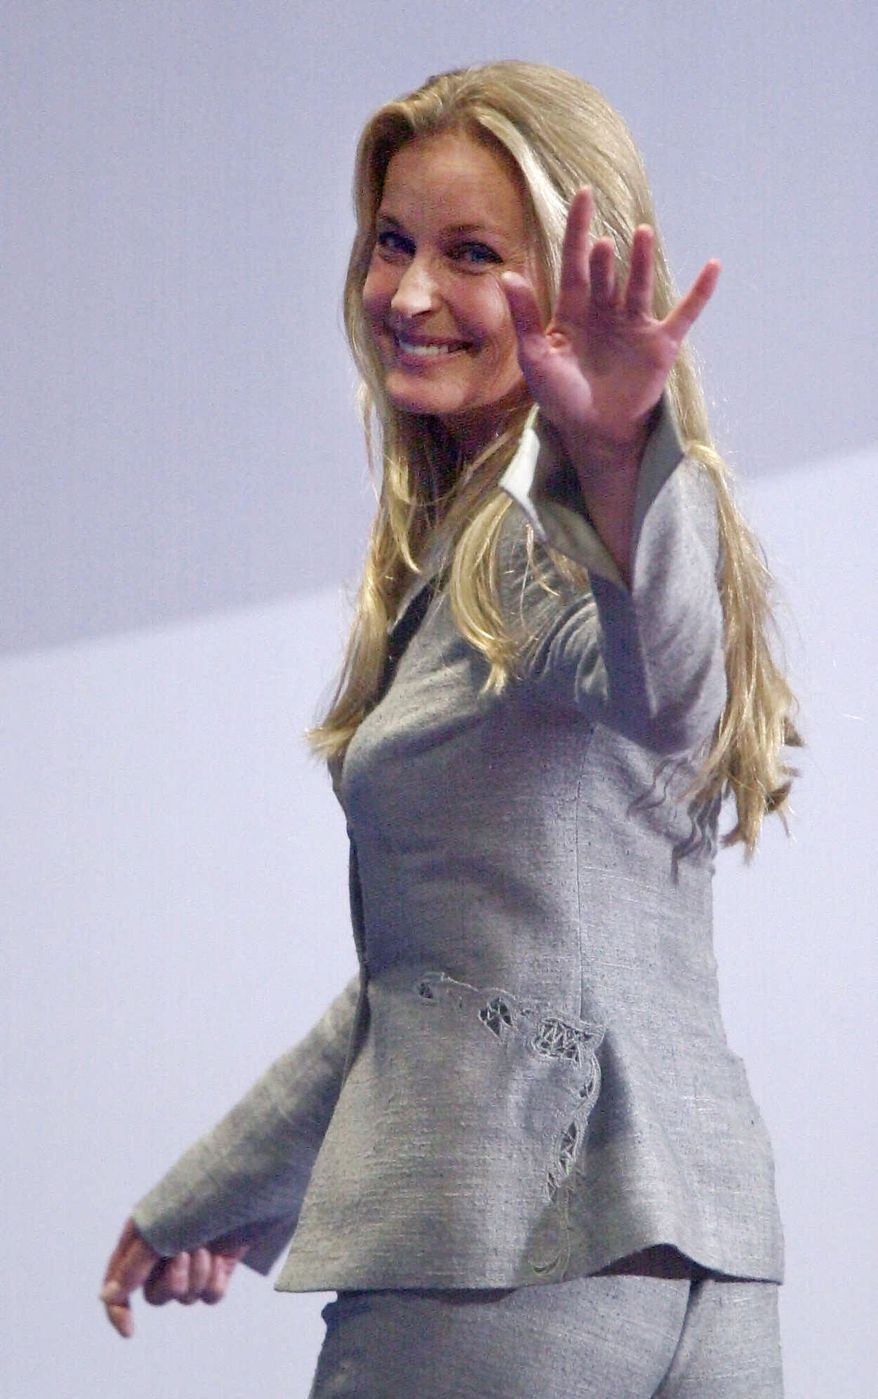 Actress Bo Derek waves as she leaves the stage after introducing California Assemblyman Abel Maldonado to delegates at the Republican National Convention on Thursday, Aug. 3, 2000 in Philadephia. (AP Photo/Mark Humphrey)